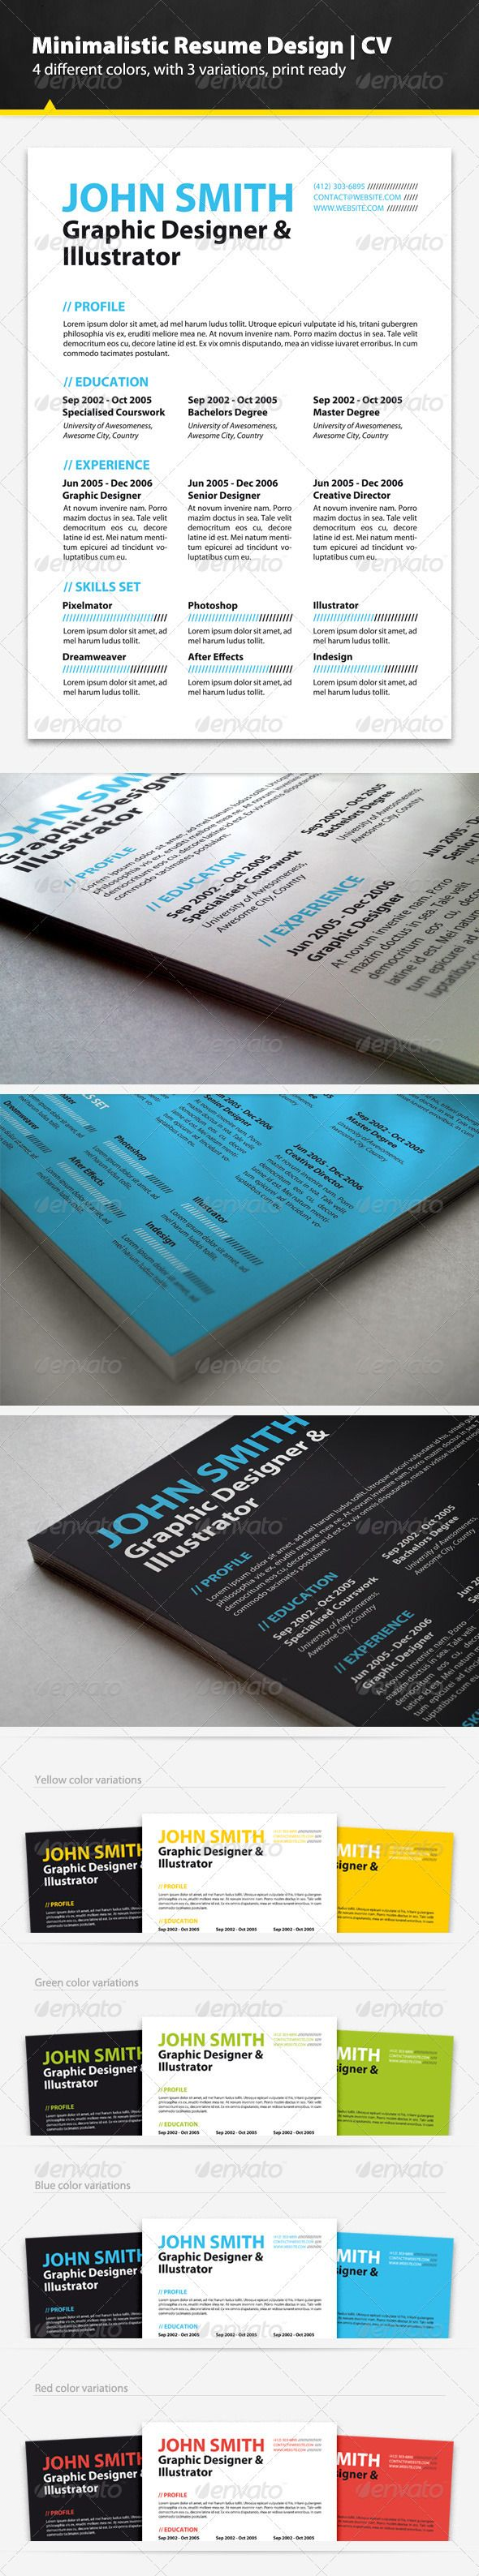 Minimalistic Resume Design — Photoshop PSD #curriculum #stylish • Available here → https://graphicriver.net/item/minimalistic-resume-design/3455709?ref=pxcr